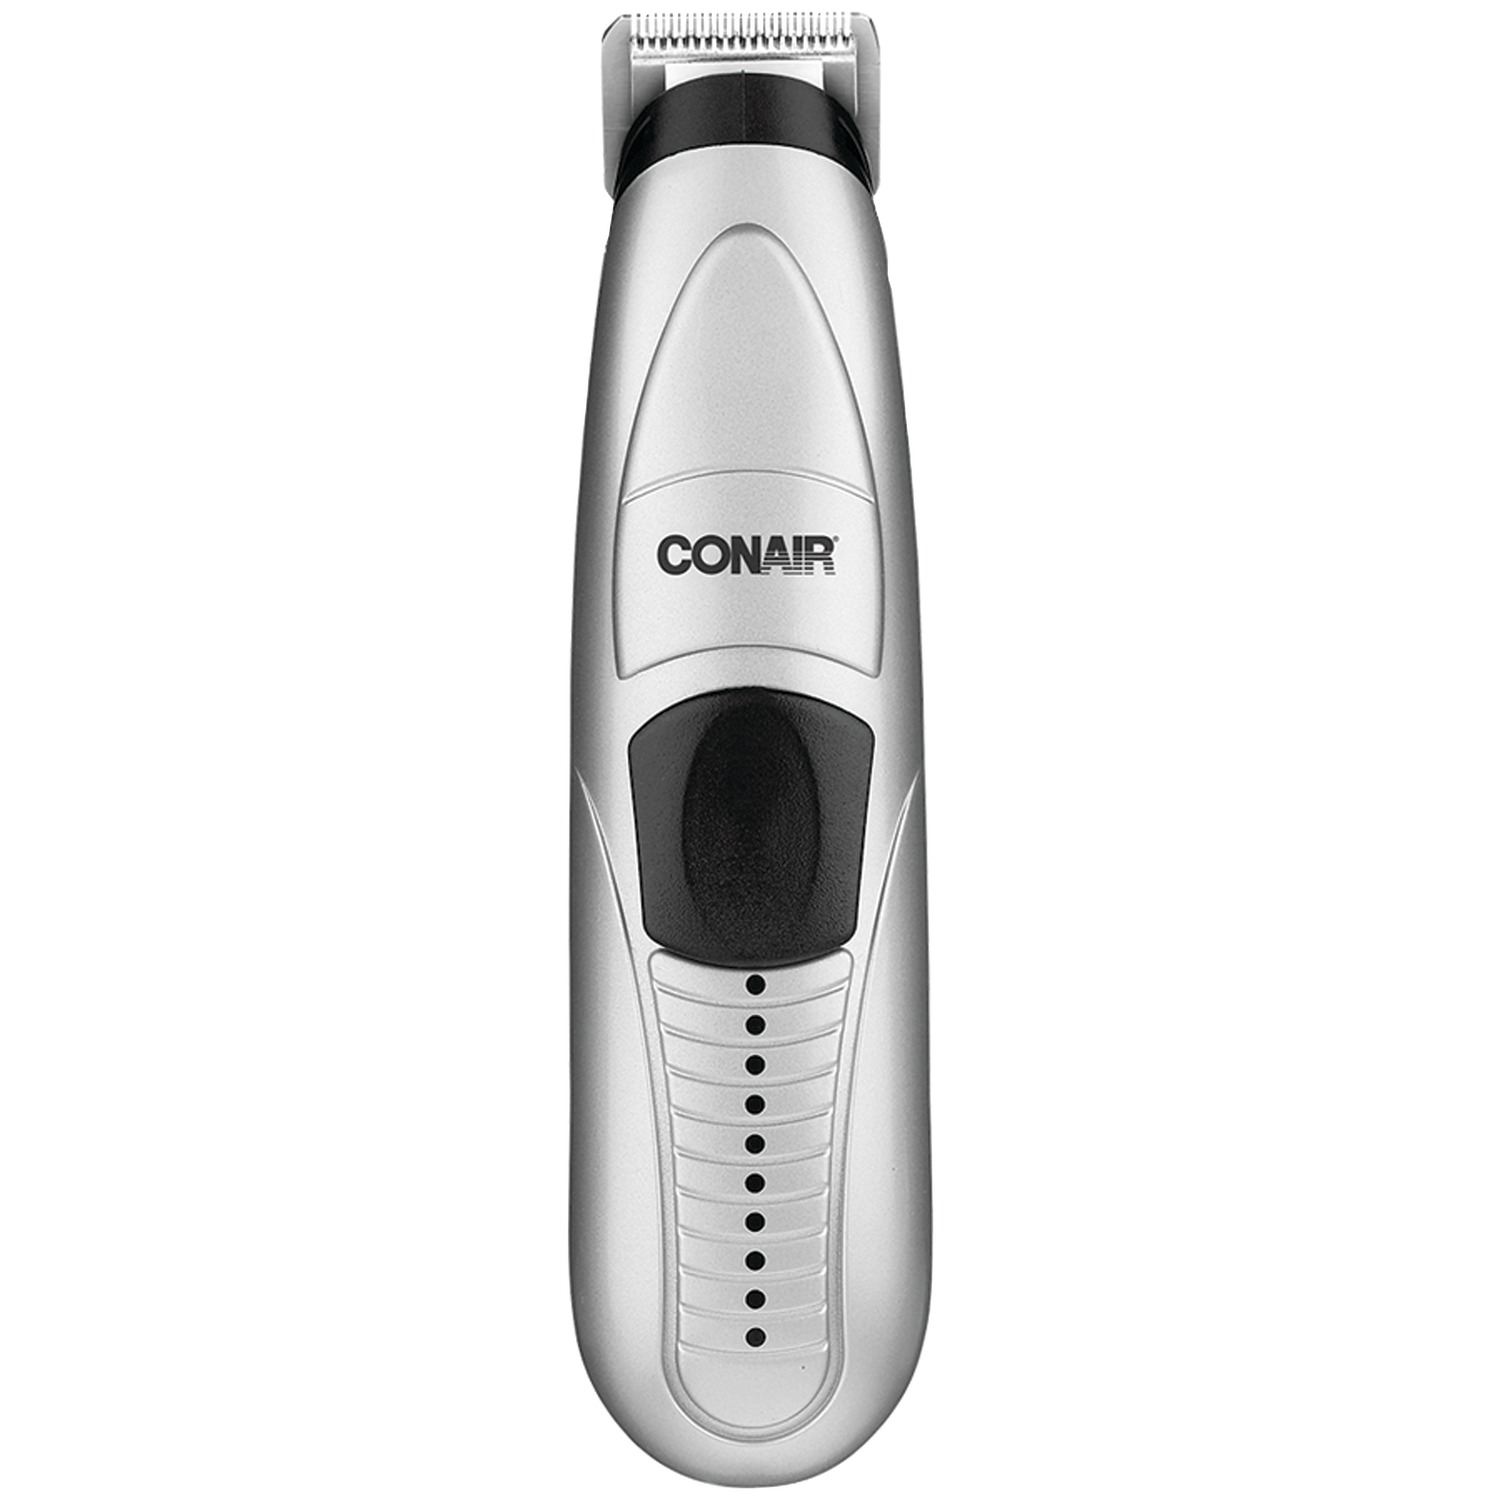 Conair Gmt175r All-in-1 Battery-operated Beard & Mustache Trimmer